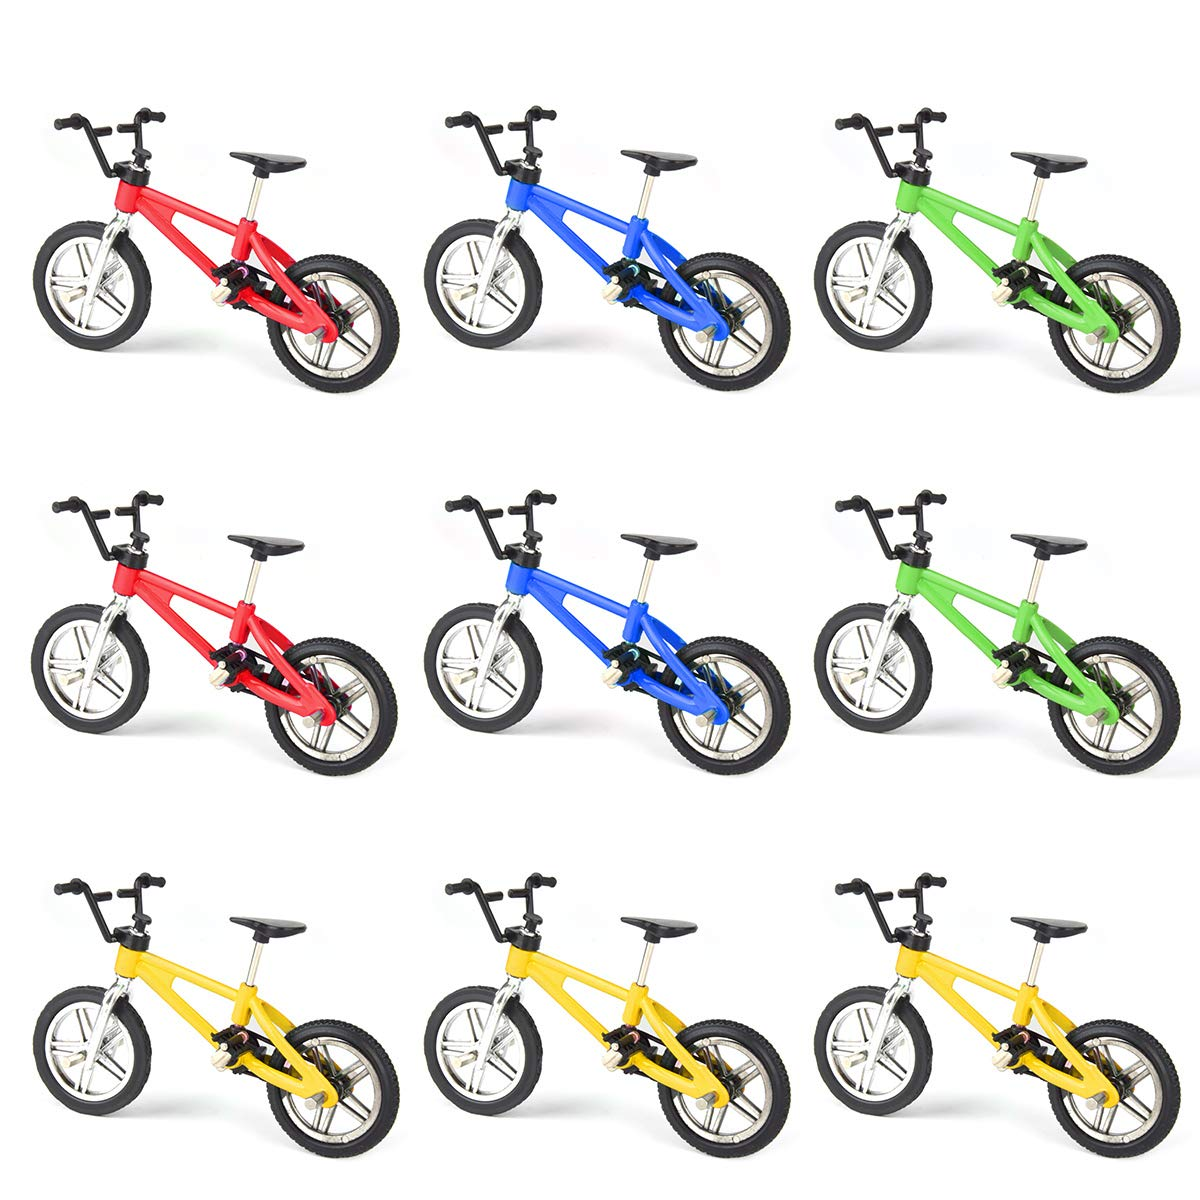 Hotusi 9pcs Mini Finger Bikes Mini Extreme Sports Finger Bicycle Toy Creative Game Toy Cool Boy Gifts(Random Colors) by Hotusi